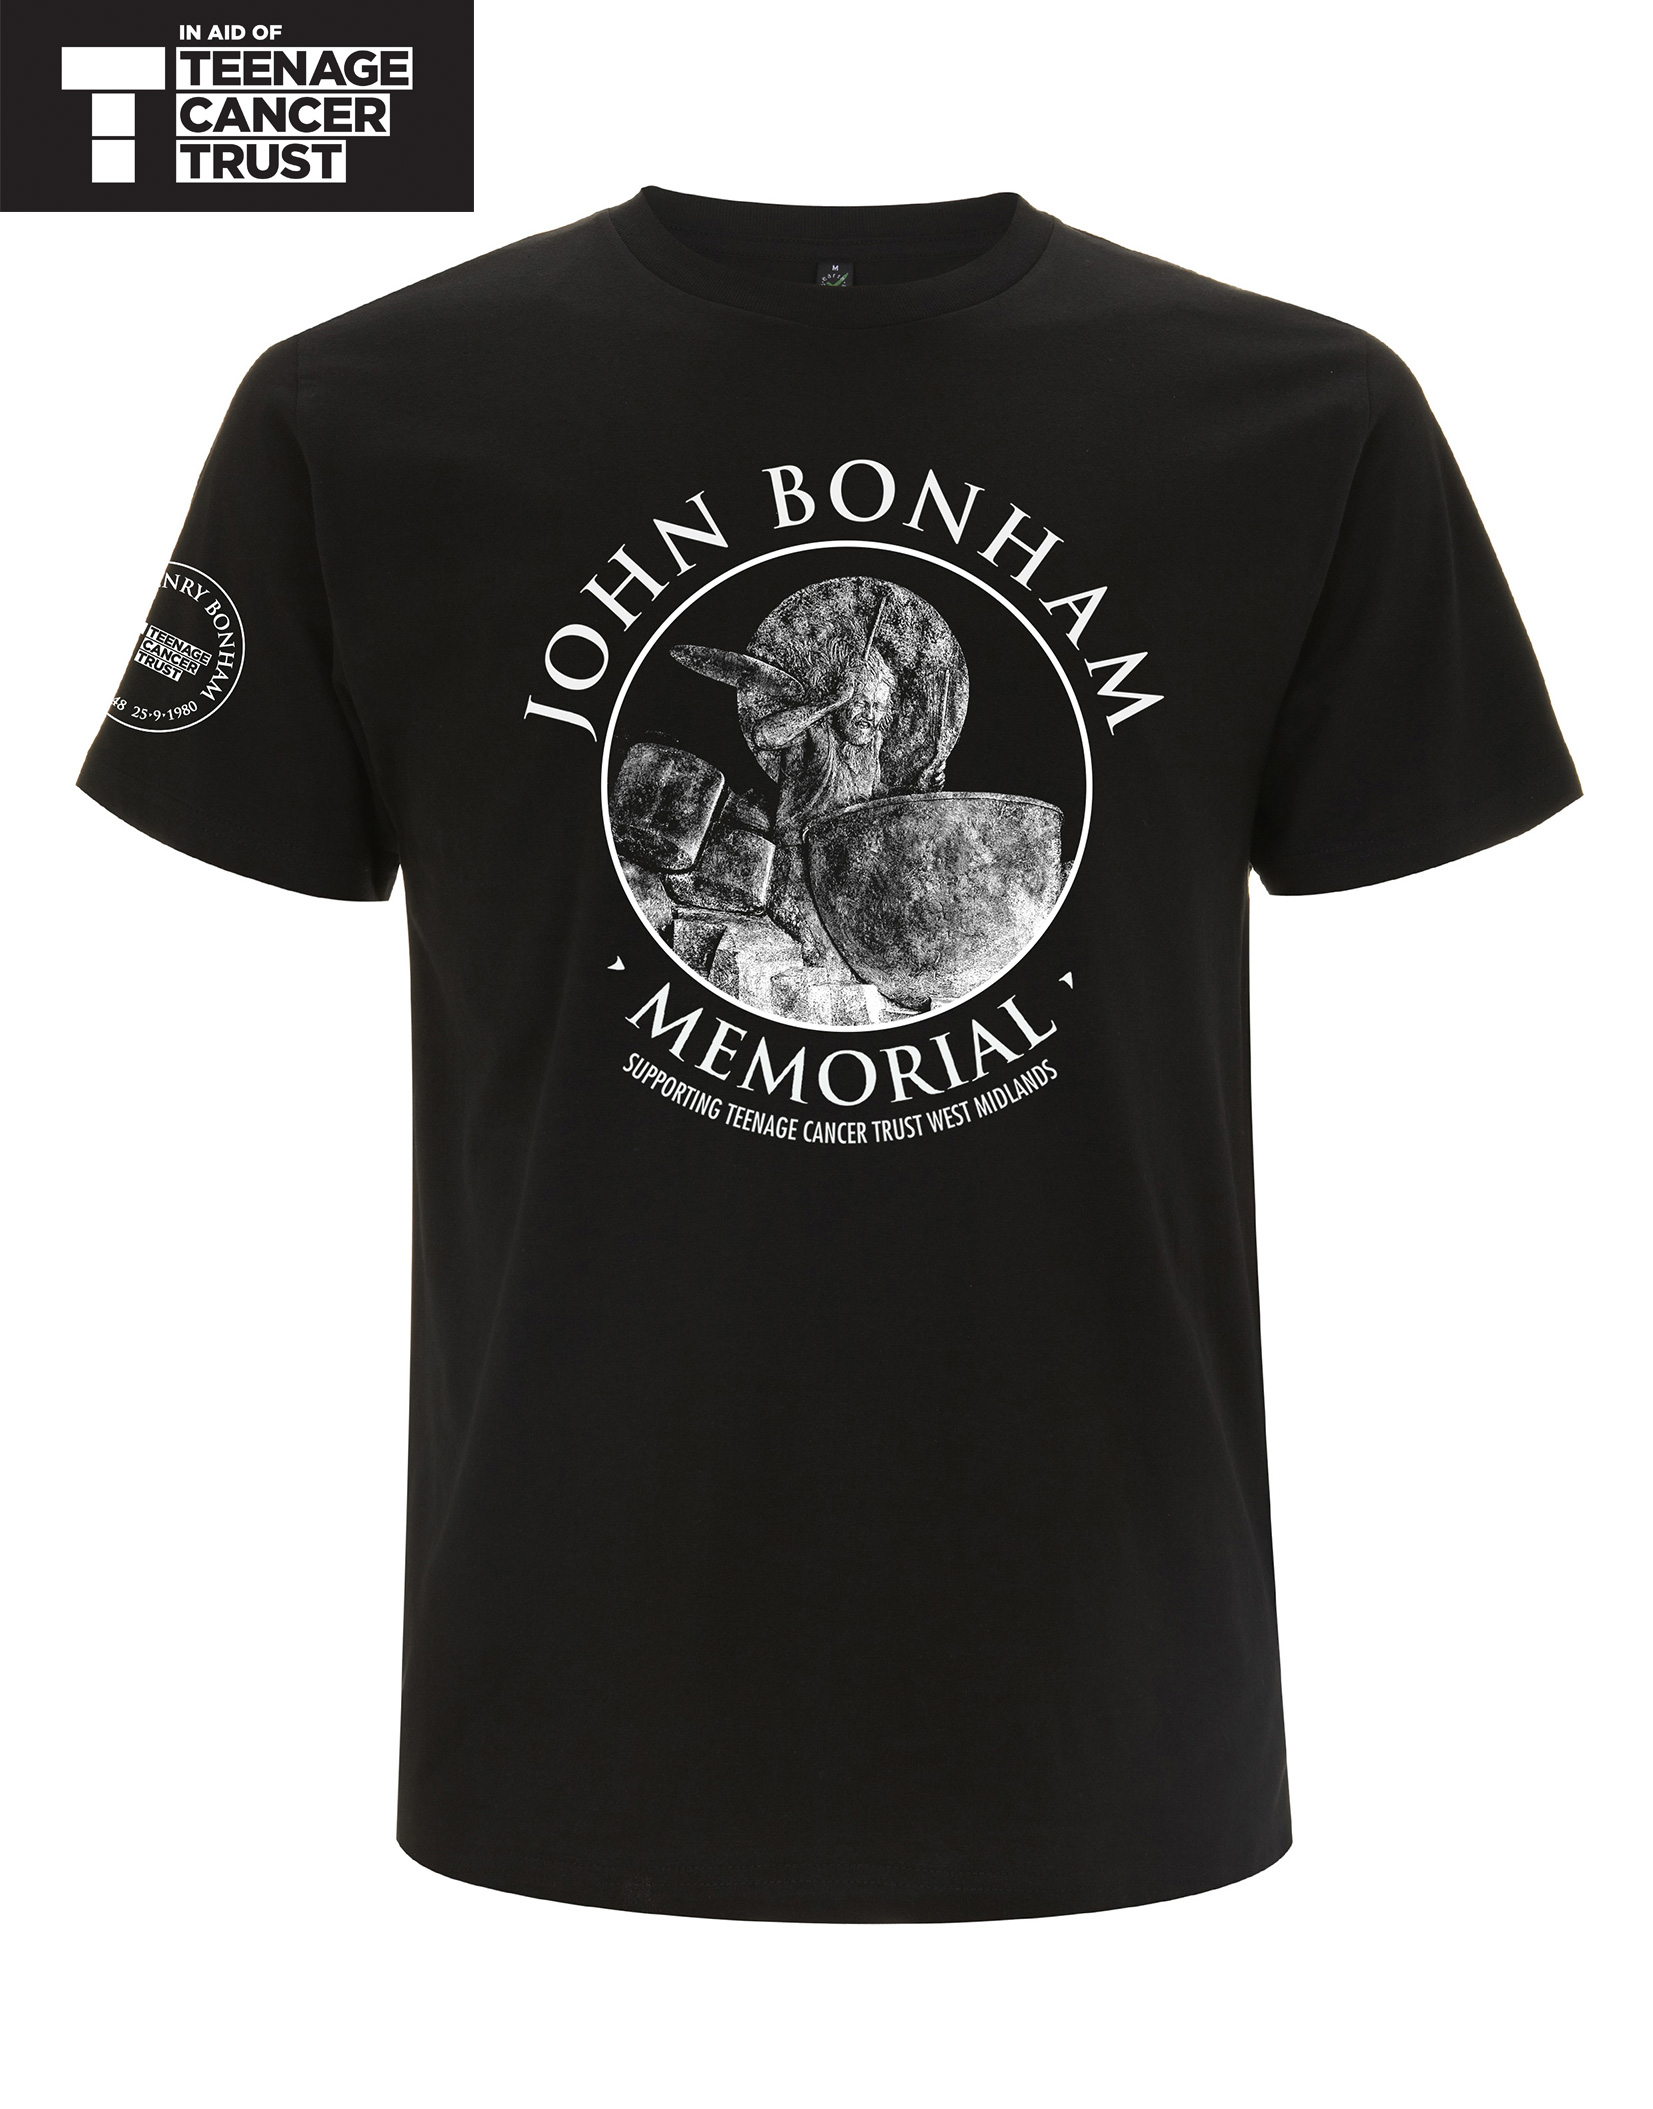 Memorial T-Shirt - John Bonham